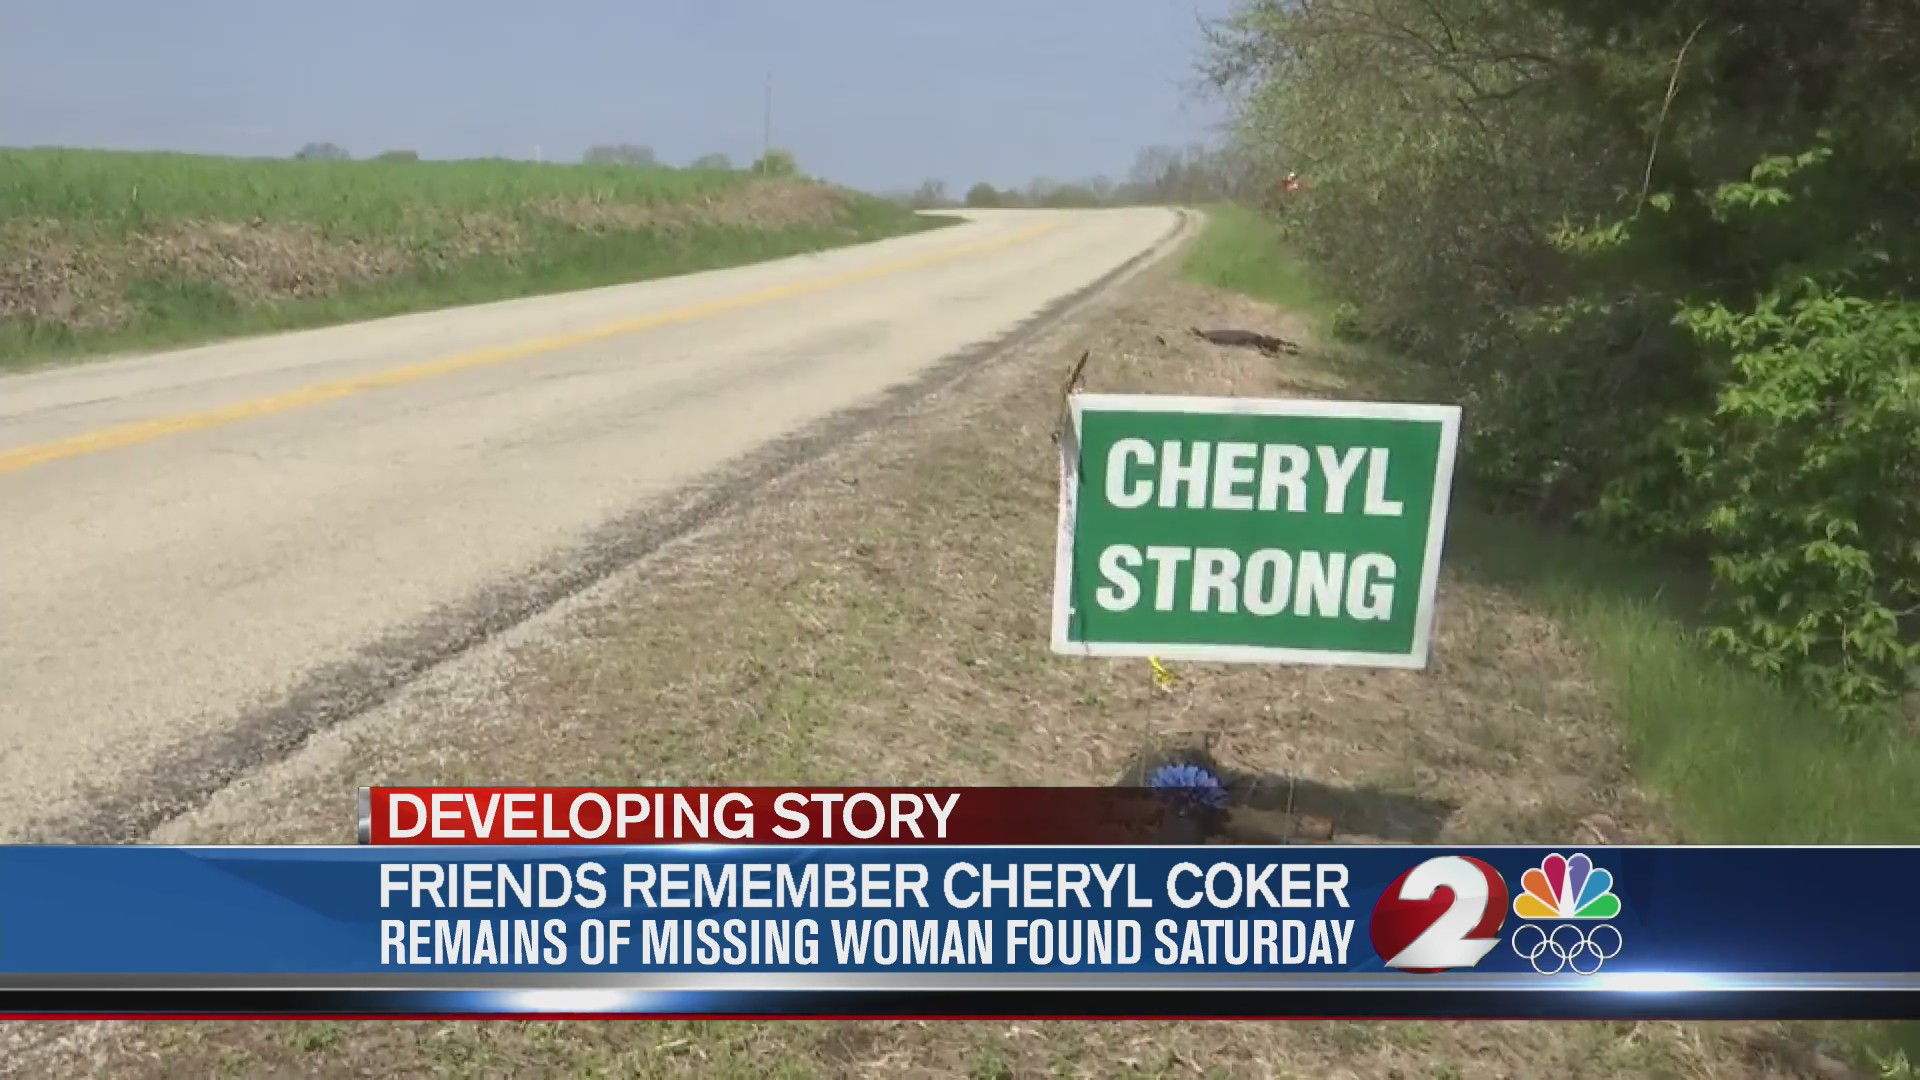 Friends remember Cheryl Coker